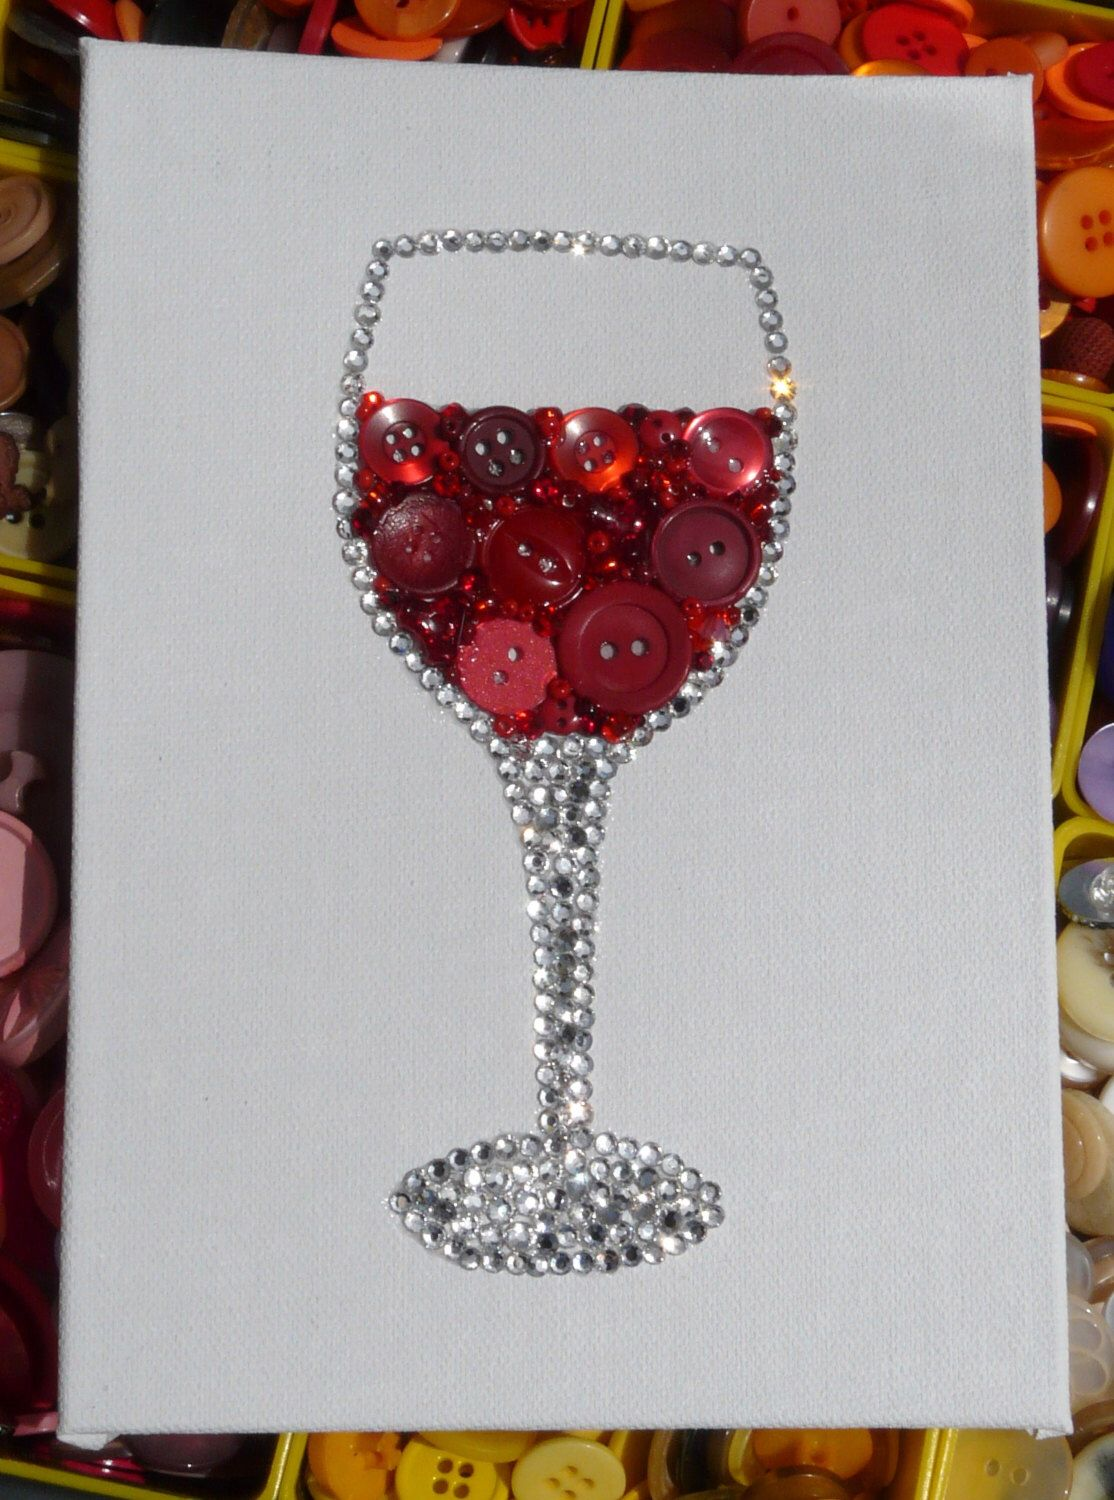 Red Red Wine Wine Glass Button Bead Wall Art With Lots Of Sparkle On 5x7 White Canvas Kitchen Decor M Vintage Jewelry Crafts Button Crafts Button Art